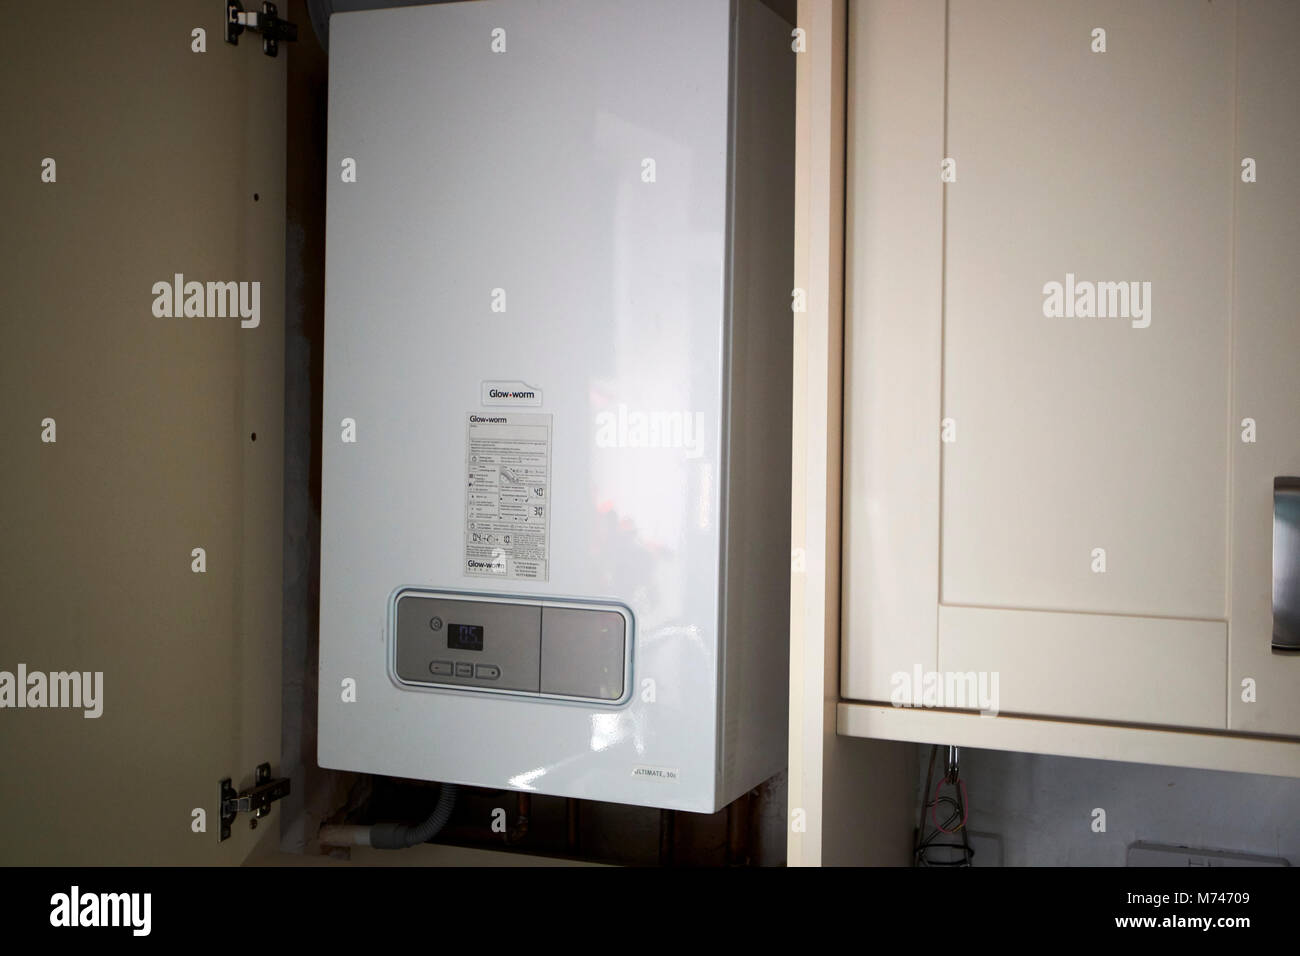 household combi gas heating and hot water supply boiler housed in a kitchen cabinet in a new kitchen newbuild in - Stock Image